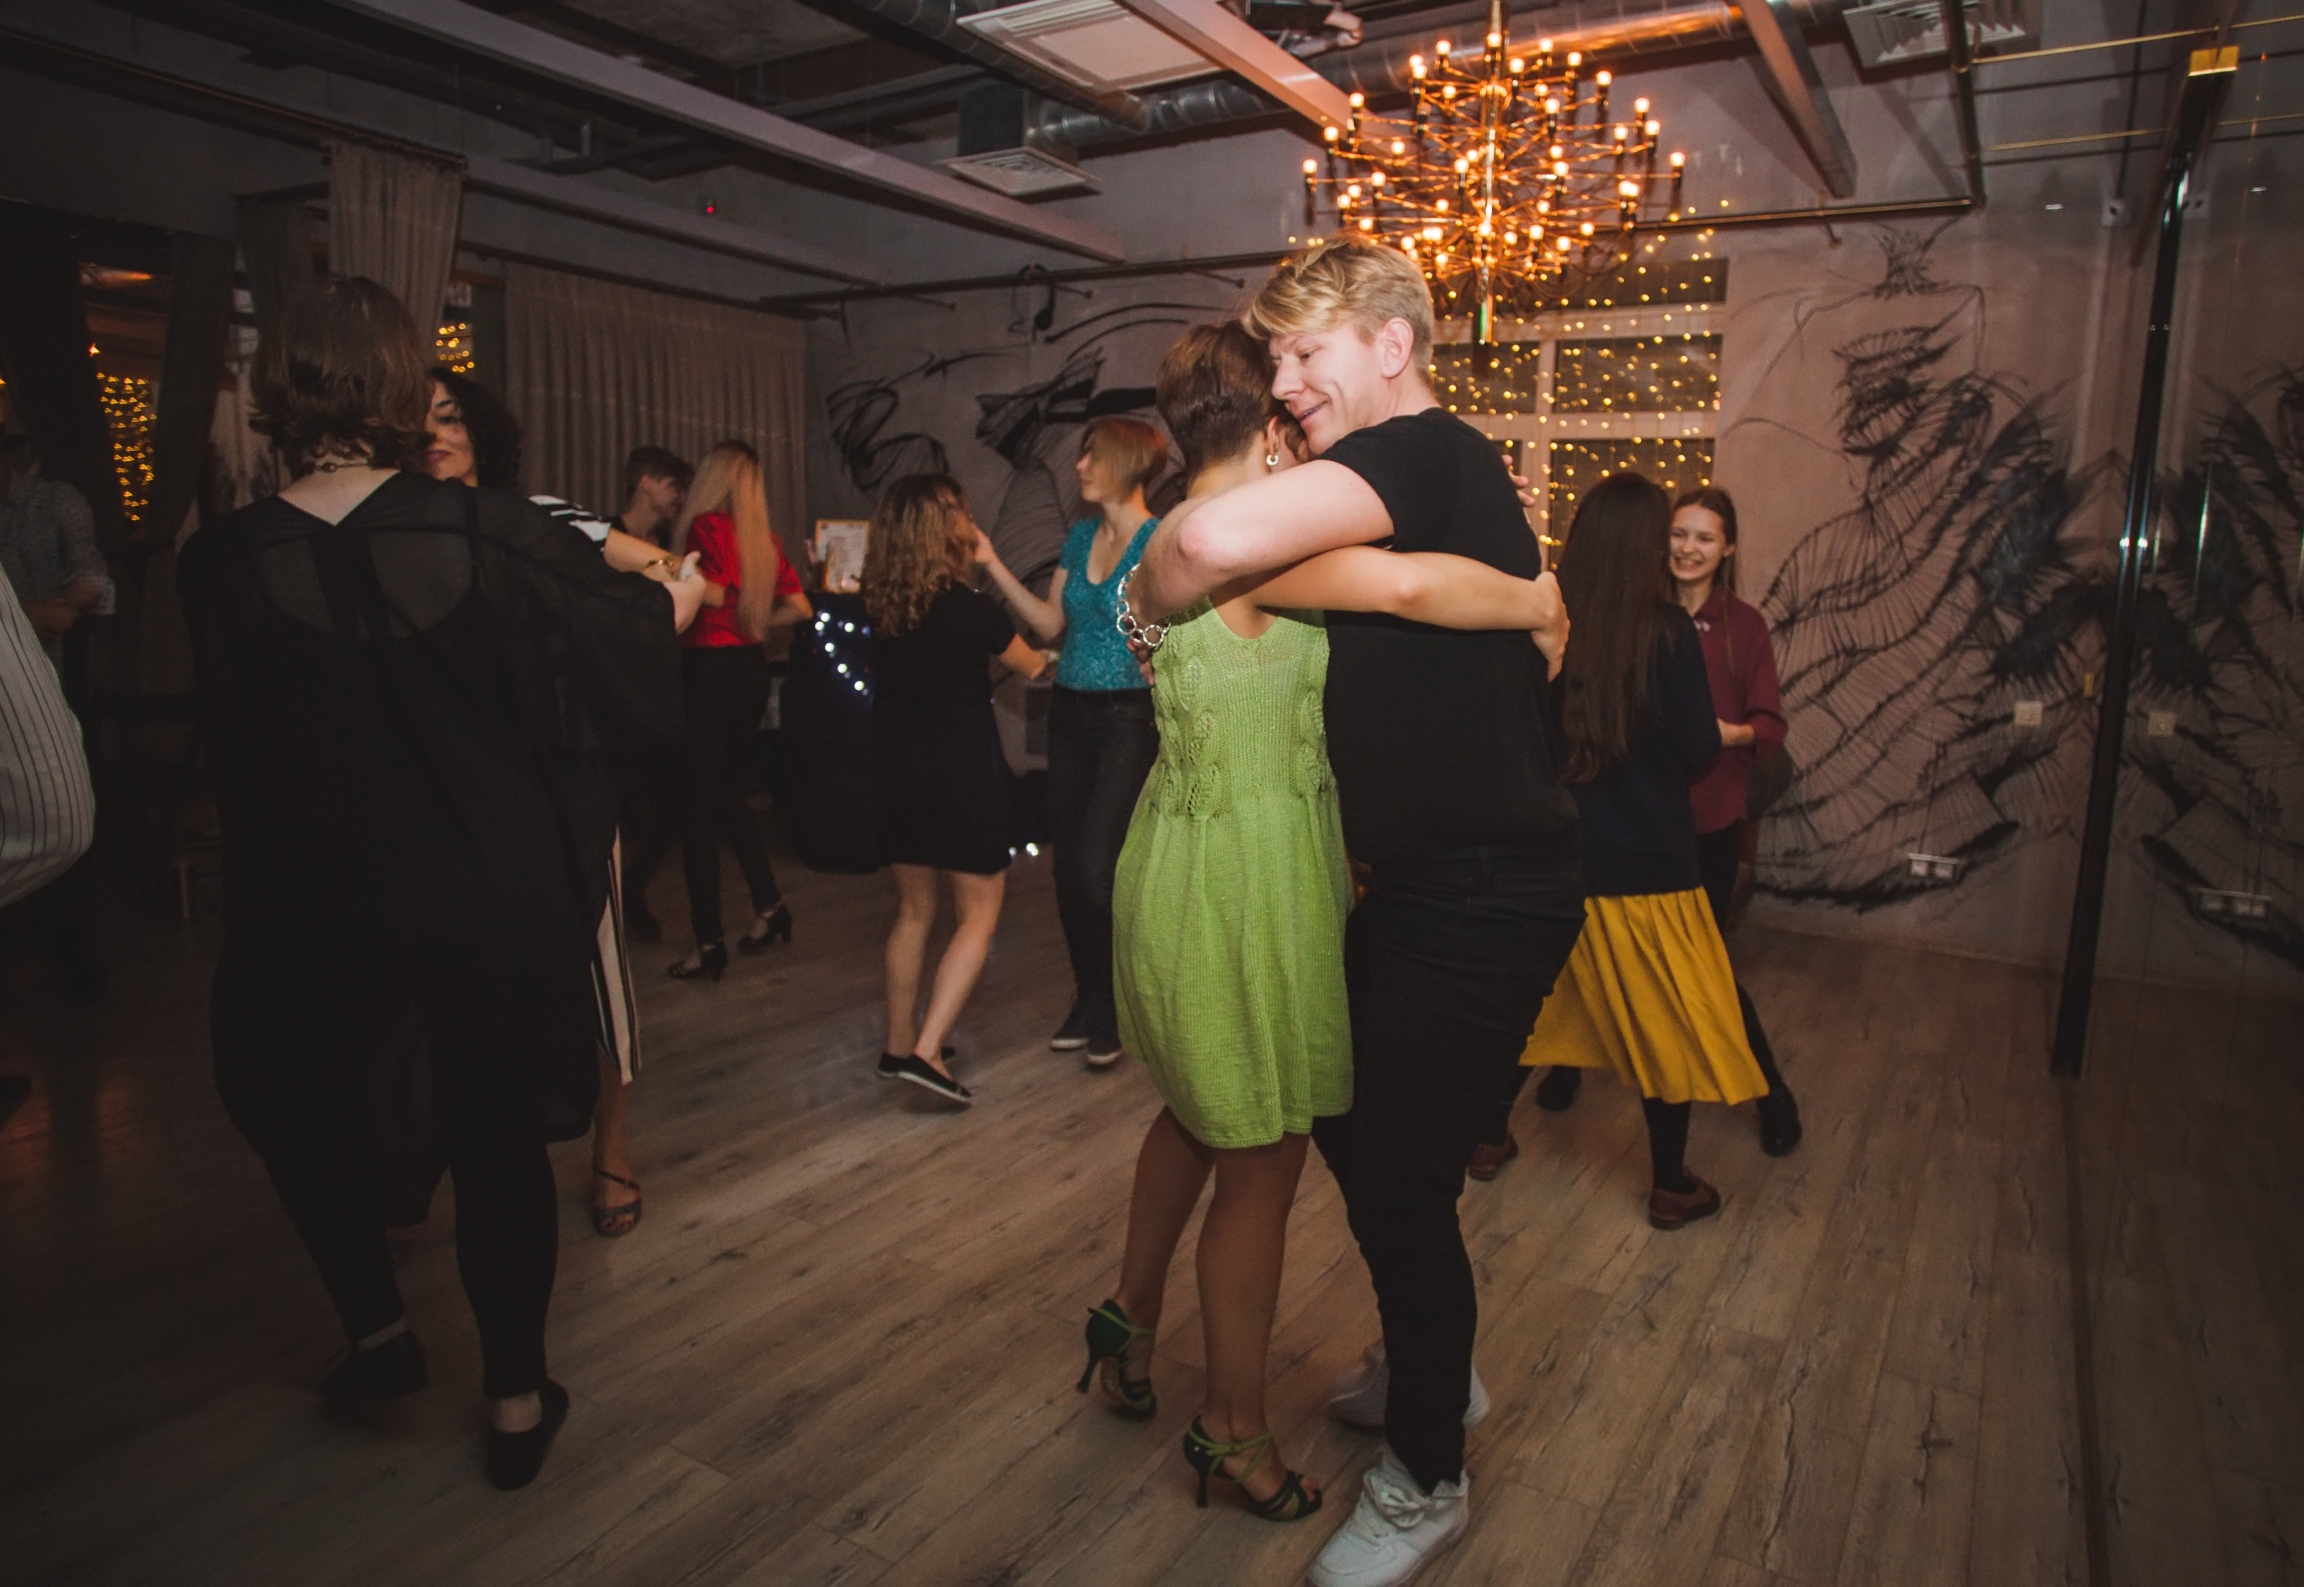 Couples dance together at a dance festival